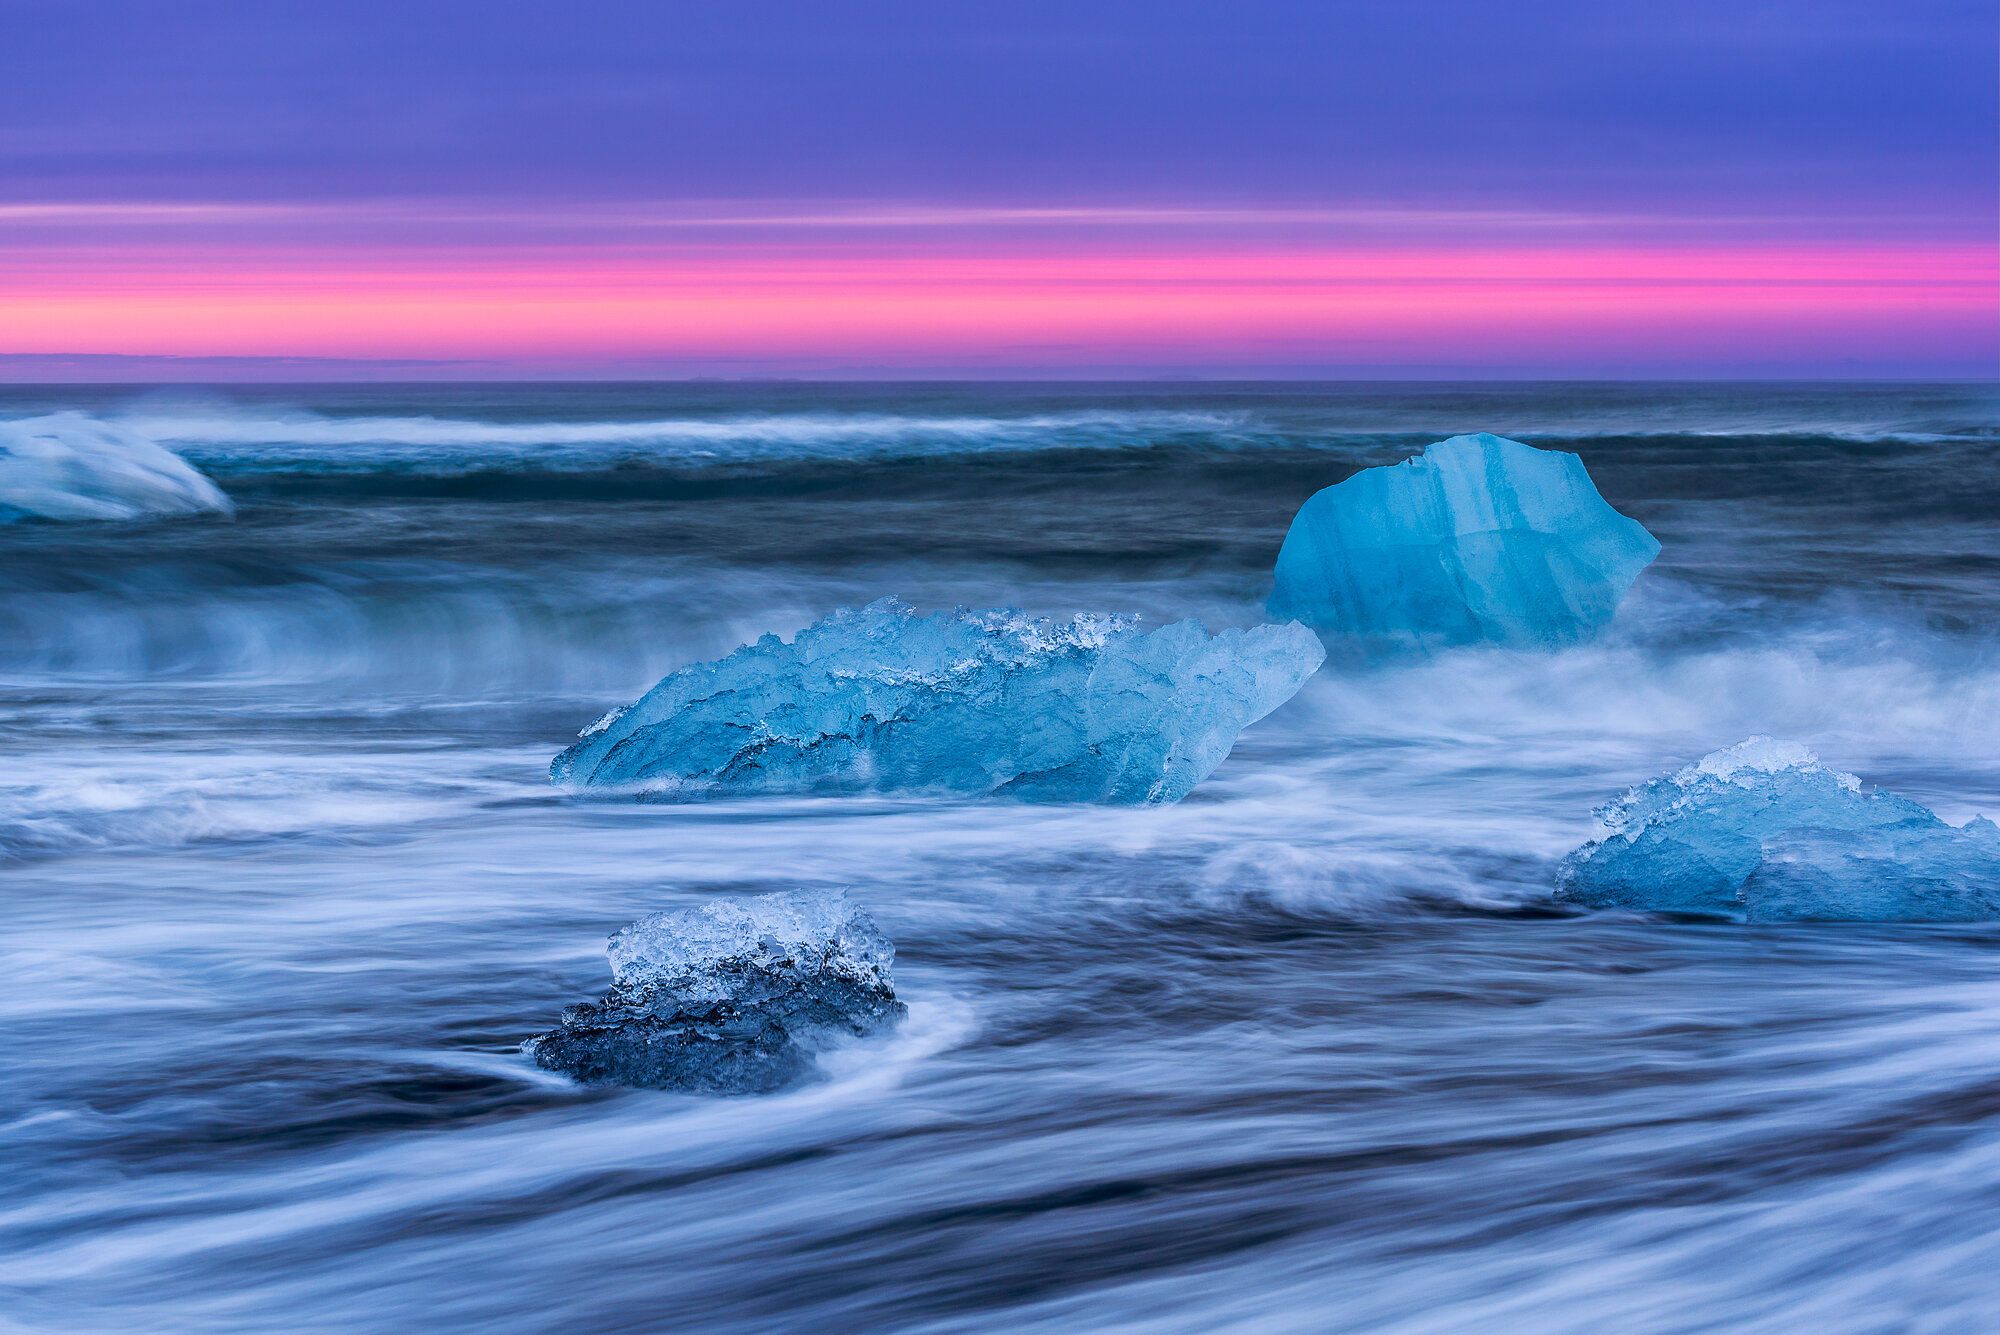 Iceland Landscape Photography: 'Ice Jewels'